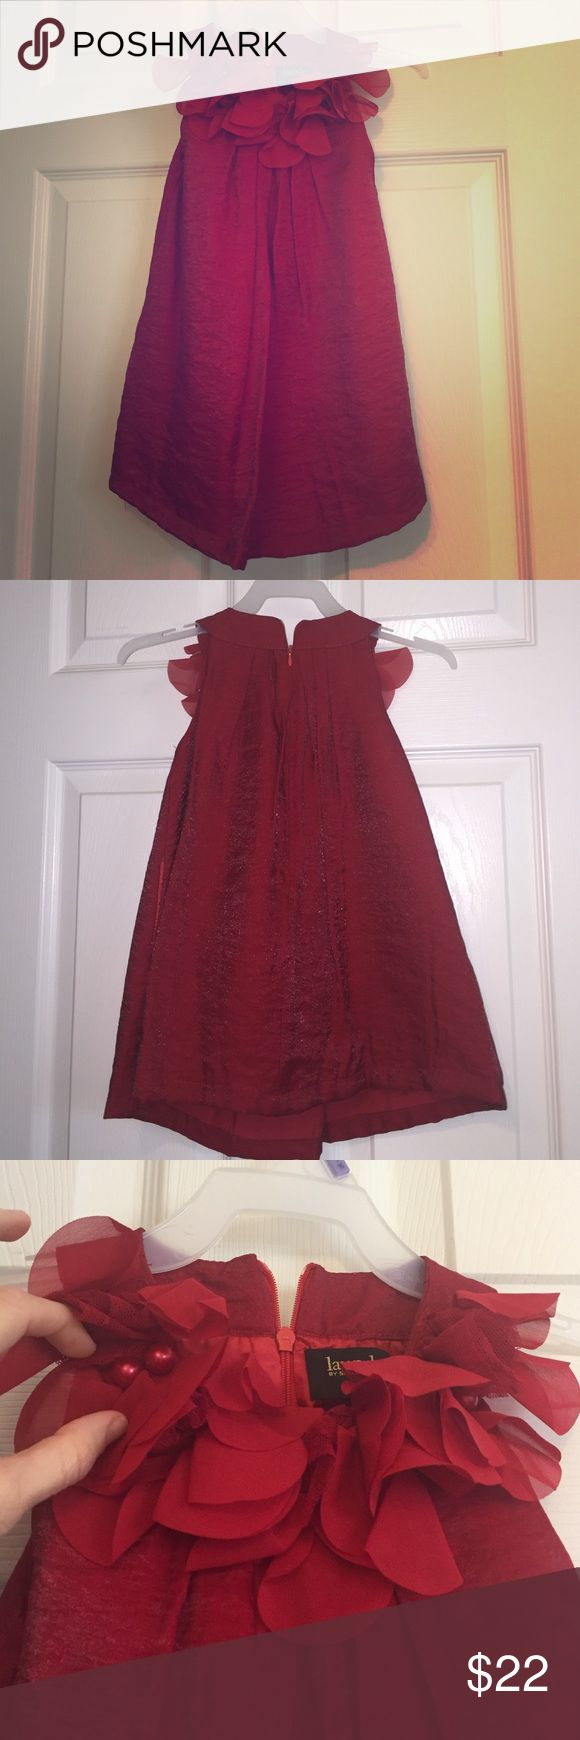 🎄Festive Christmas/party dress for toddler girl! Beautiful red girls holiday or party dress. Light weight, silky feeling material, with a little bit of a sheen to it. Detail on top is soft, shear, with lace accent & a few beads. Shift style. Bought in Nordstrom. Only worn for 2 hours. Laundry by Shelli Segal Dresses